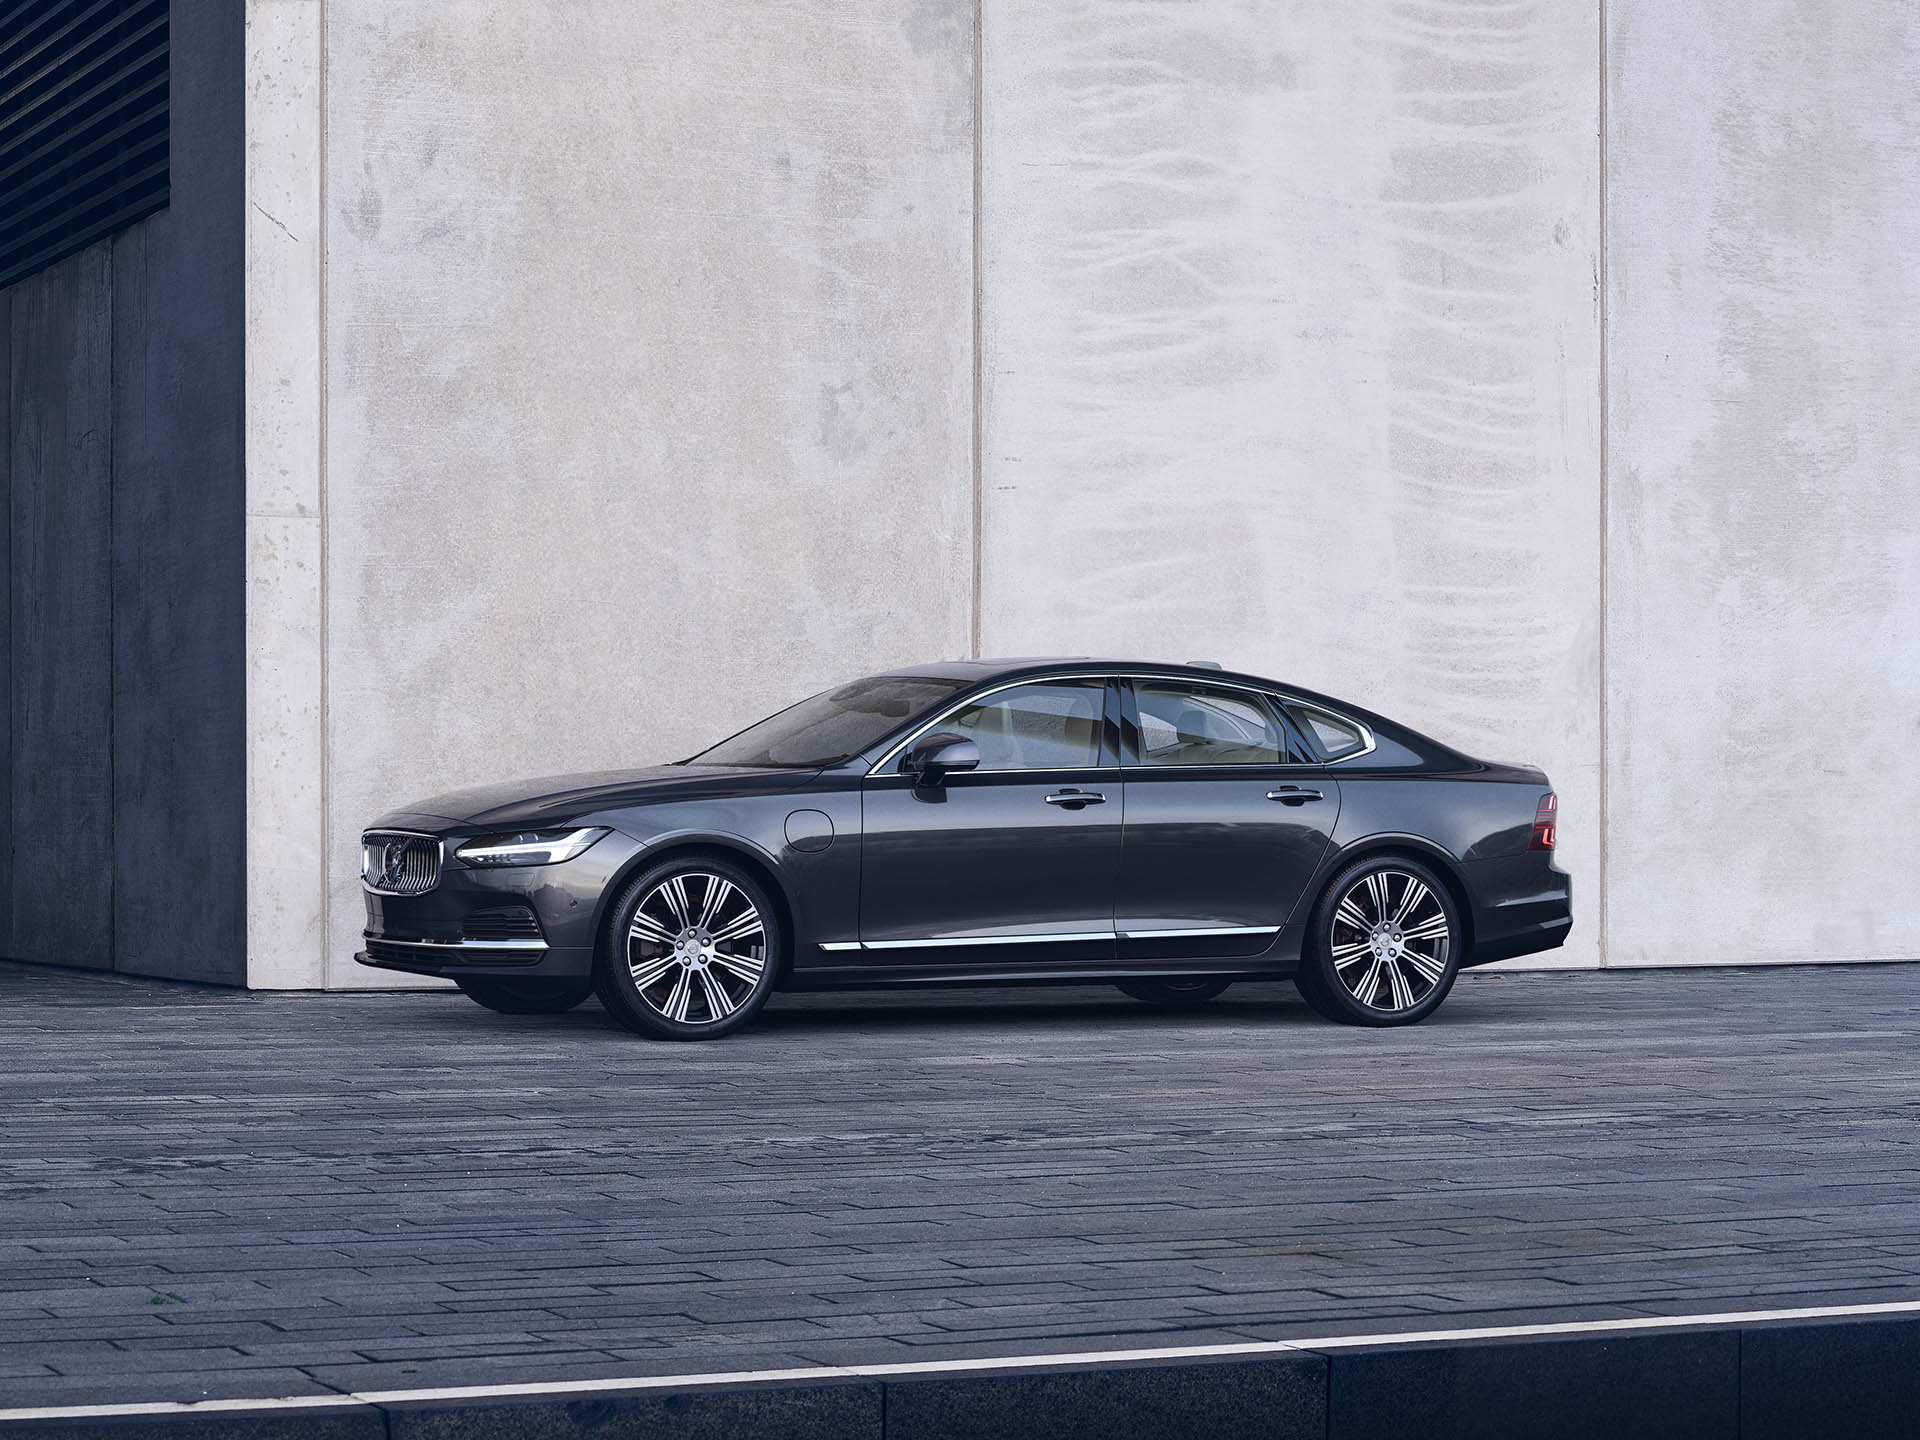 A Volvo Sedan Recharge parked outside in front of a big wall